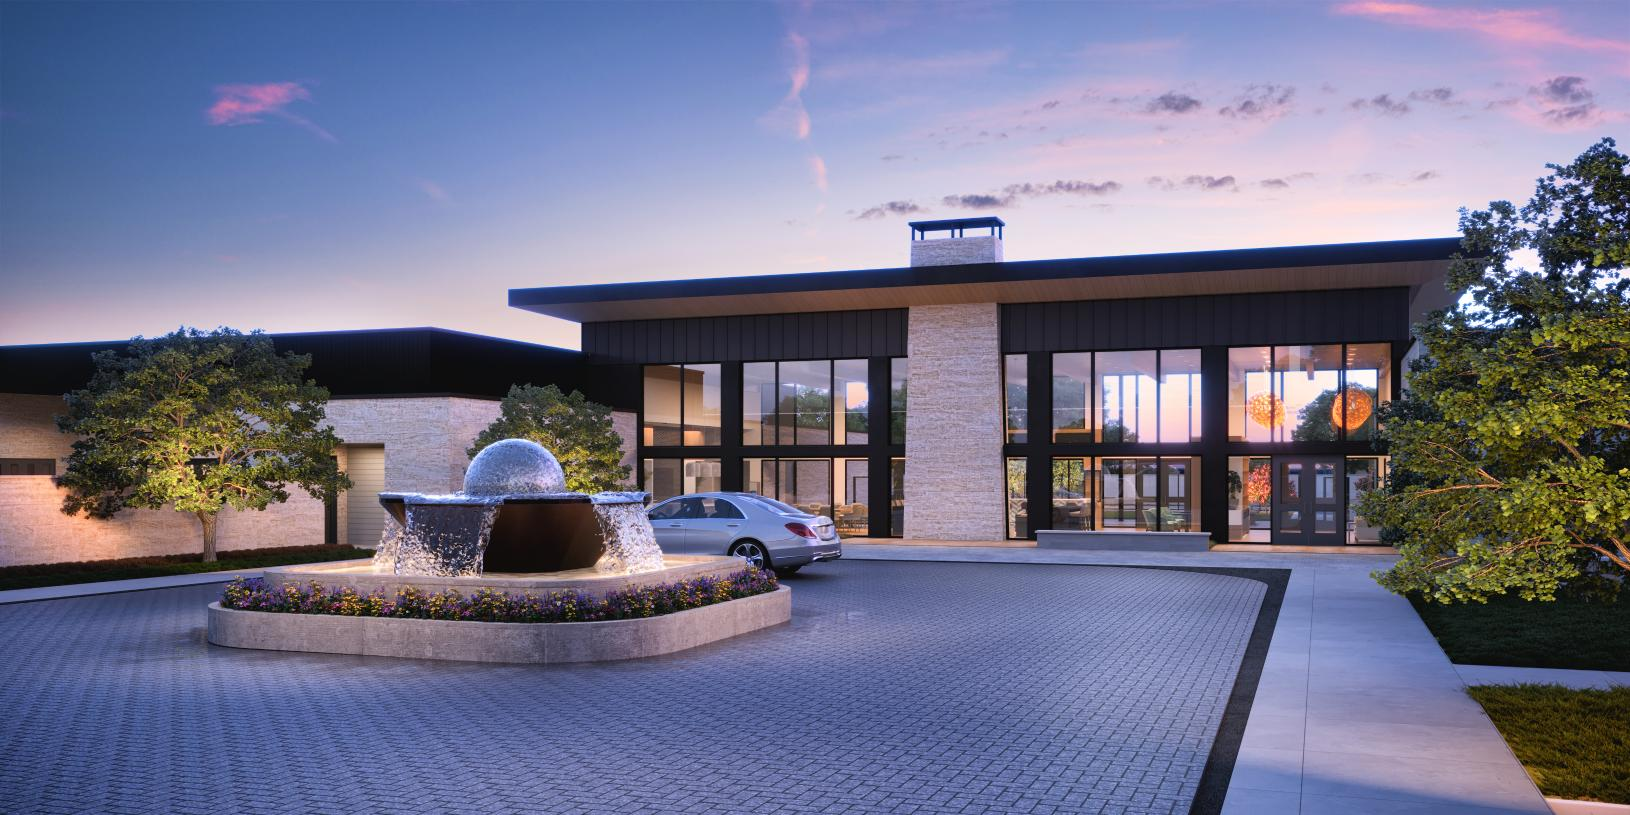 Expansive 18,000-square-foot resort-inspired clubhouse with fitness center